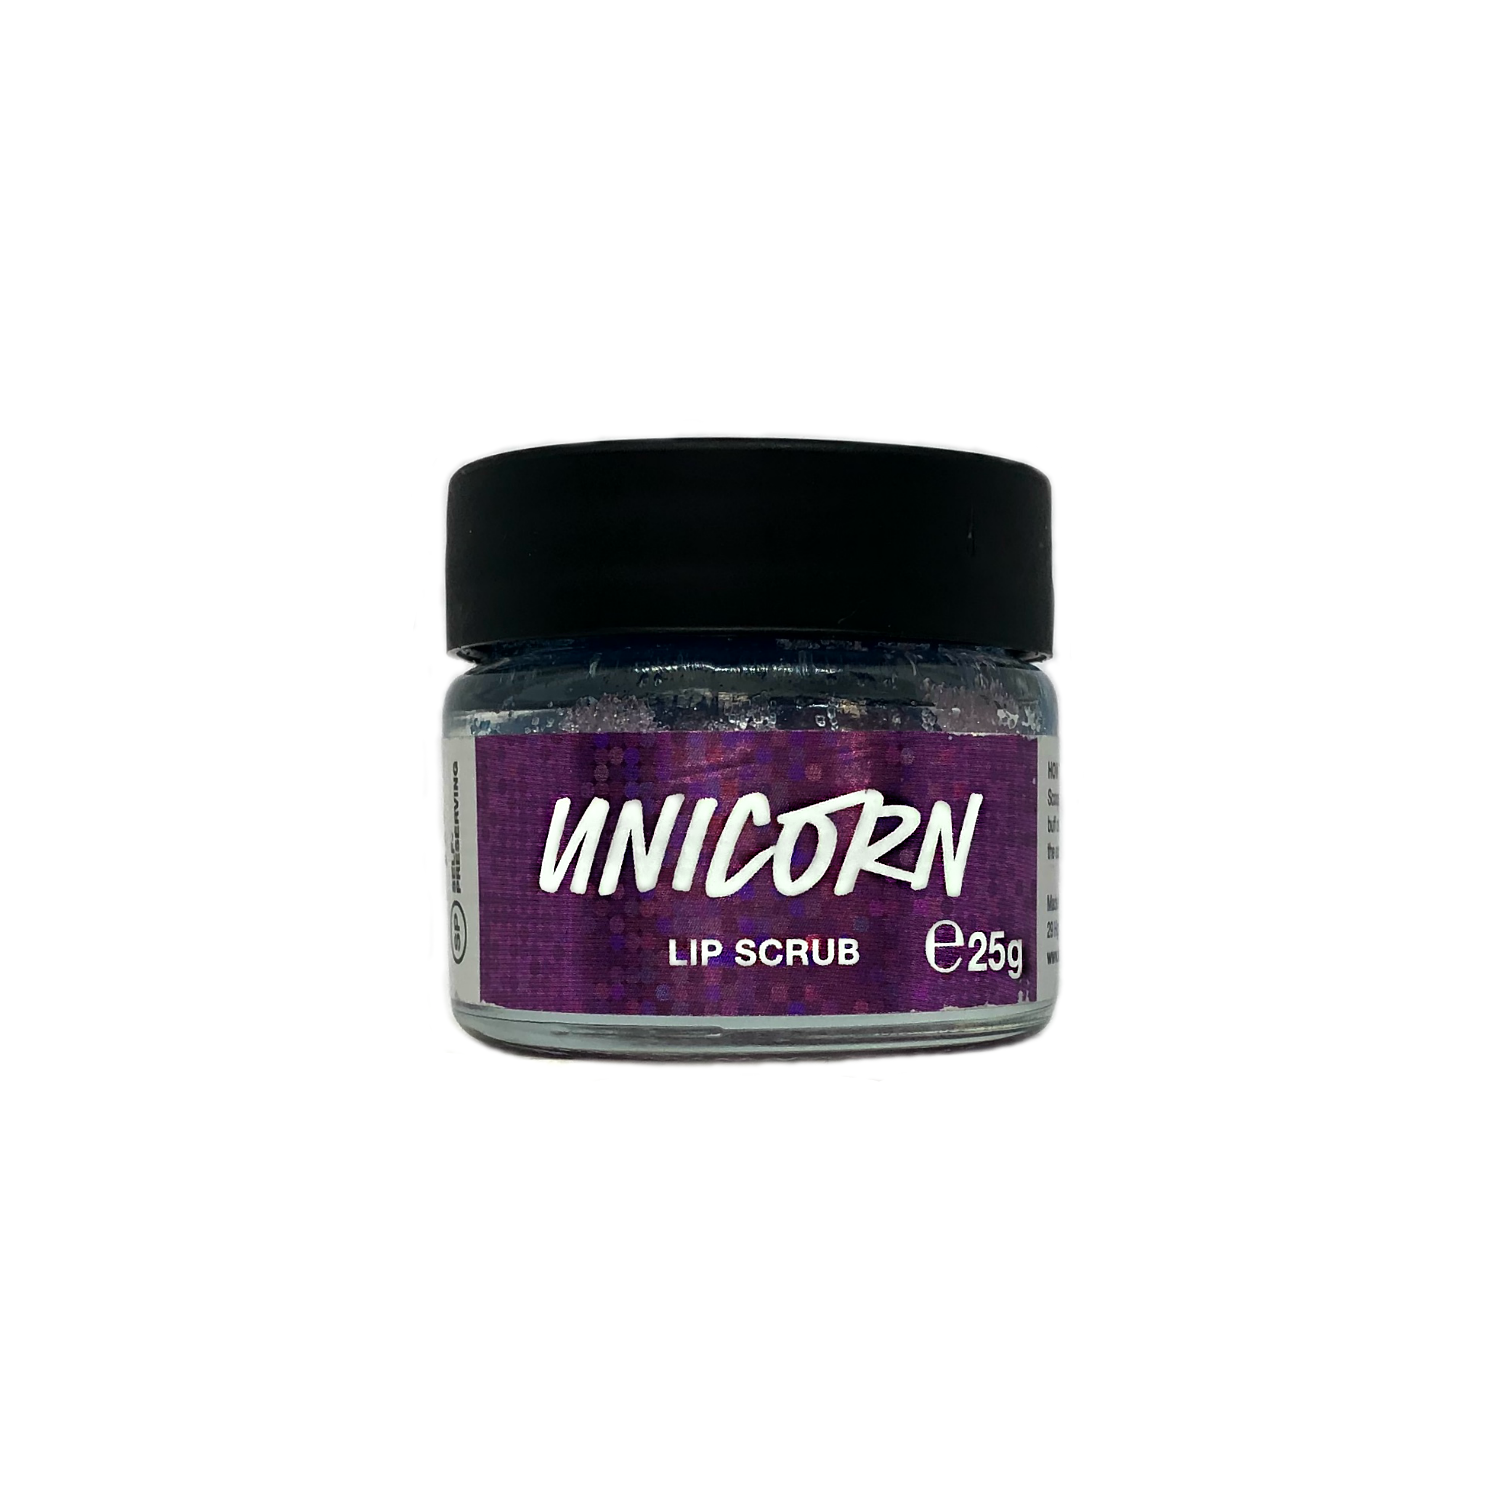 Unicorn Lip Scrub (1)